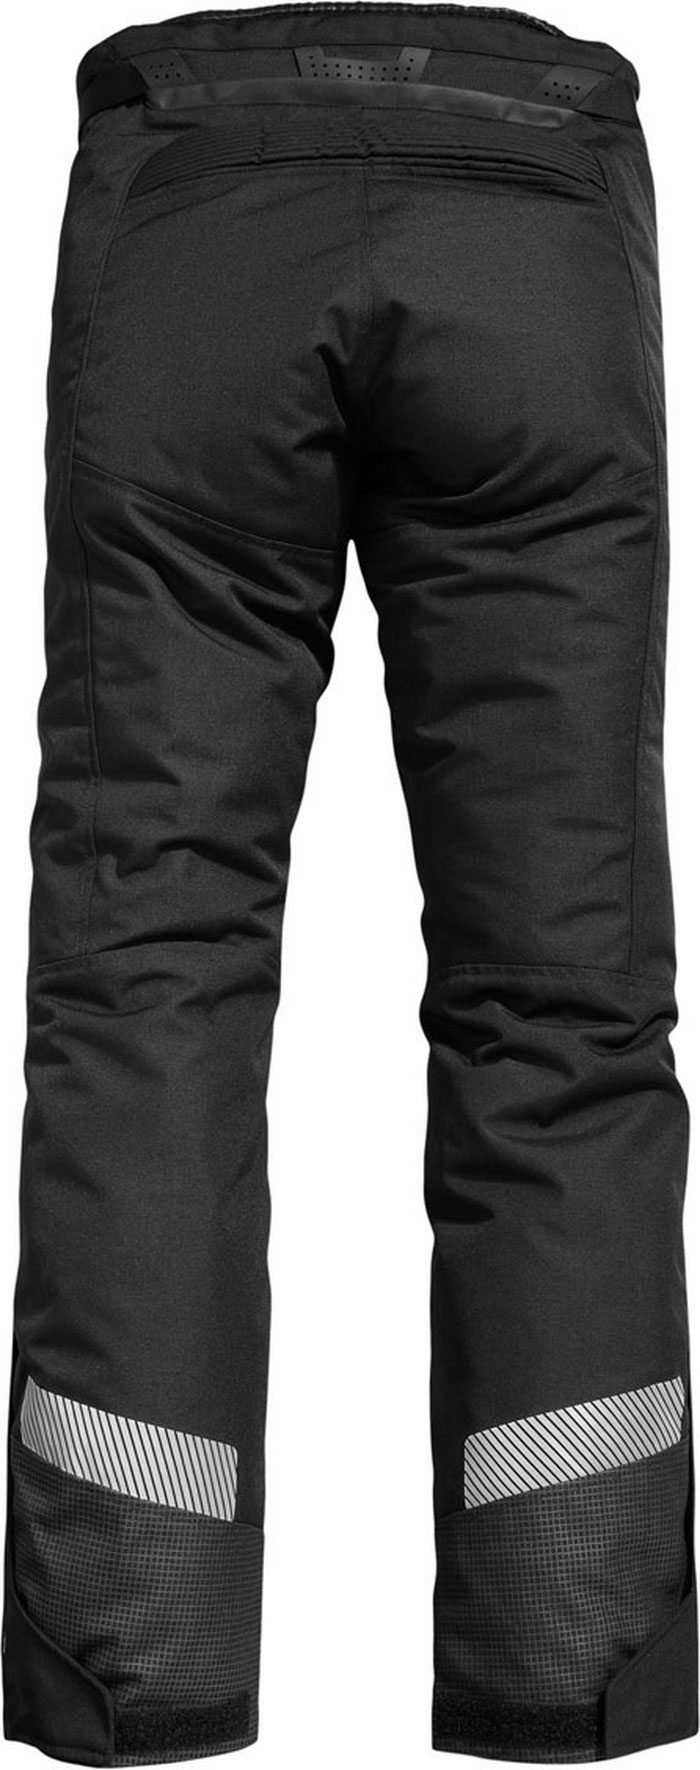 Pantaloni moto Rev'it Legacy GTX - Accorciato